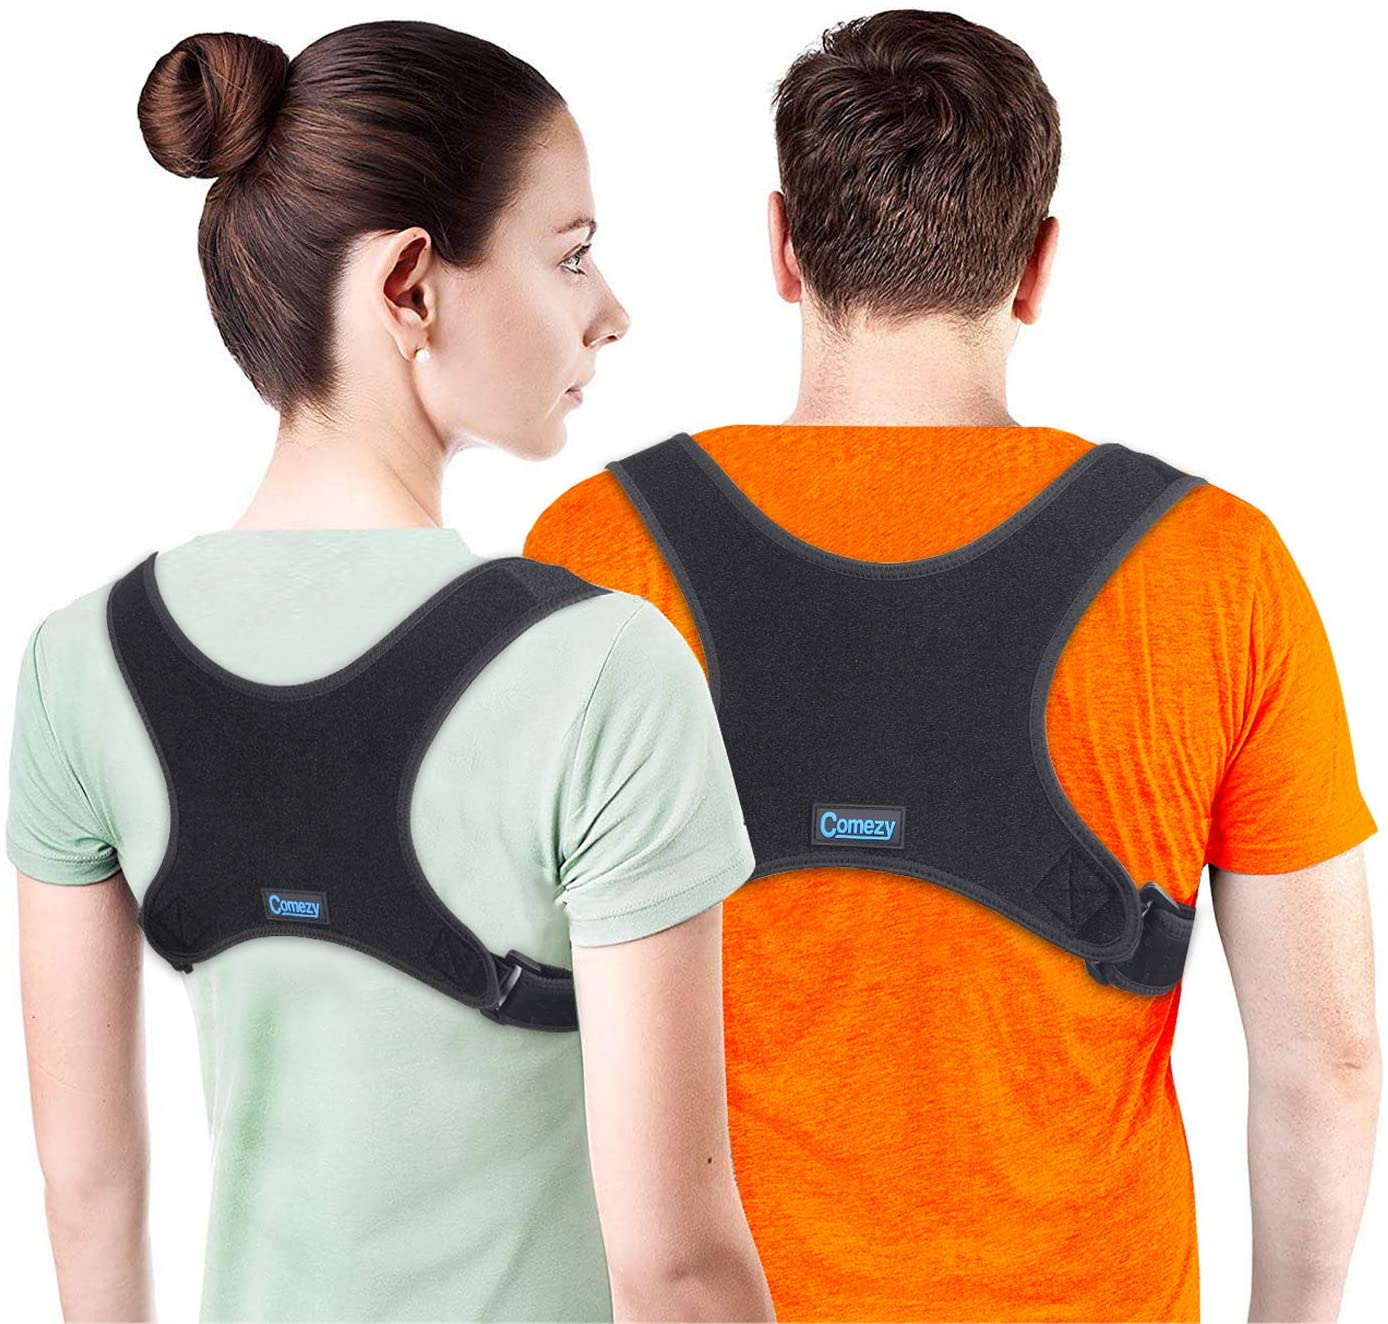 Comezy Posture Corrector for Women Men丨Effective Relieve Pain and Improve Posture Clavicle Brace丨Comfortable and Durable Support Back Brace(26-48 inch)